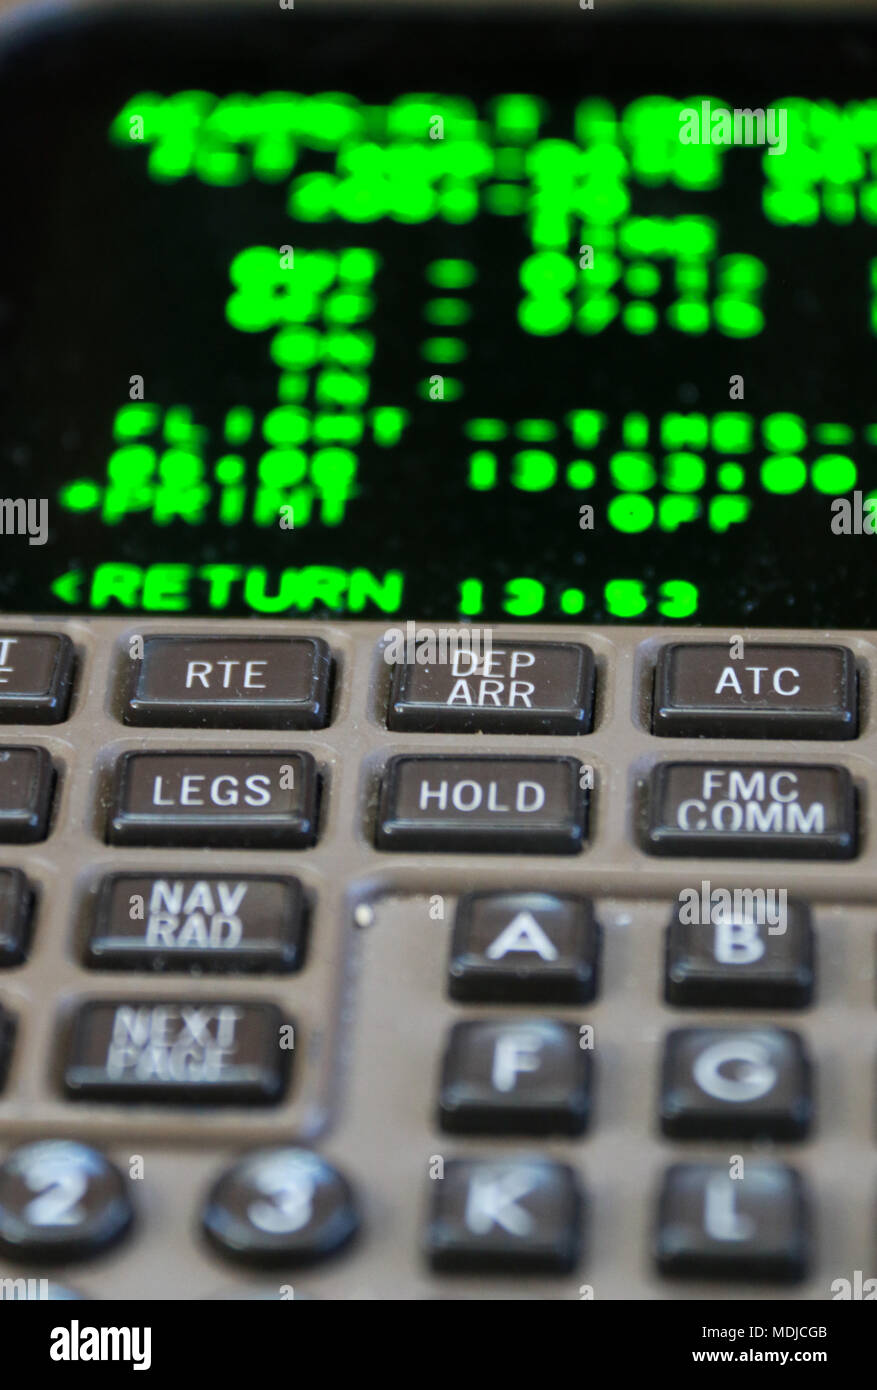 The Flight Management System on the Flight Deck of a Boeing 747-400 - Stock Image